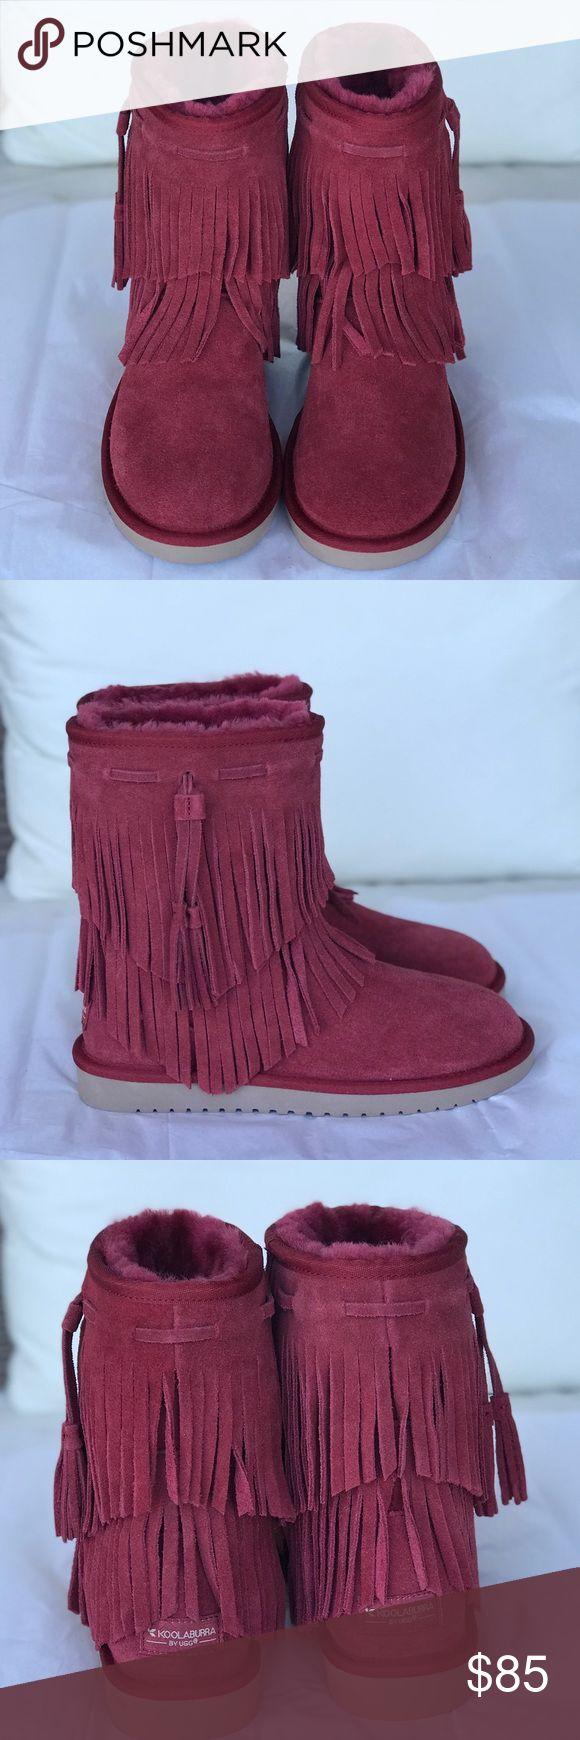 KOOLABURRA BY UGG CABLE BOOTS Brand new without box  KOOLABURRA BY UGG IS A SISTER COMPANY OF UGG AUSTRALIA BRAND UGG Shoes Winter & Rain Boots